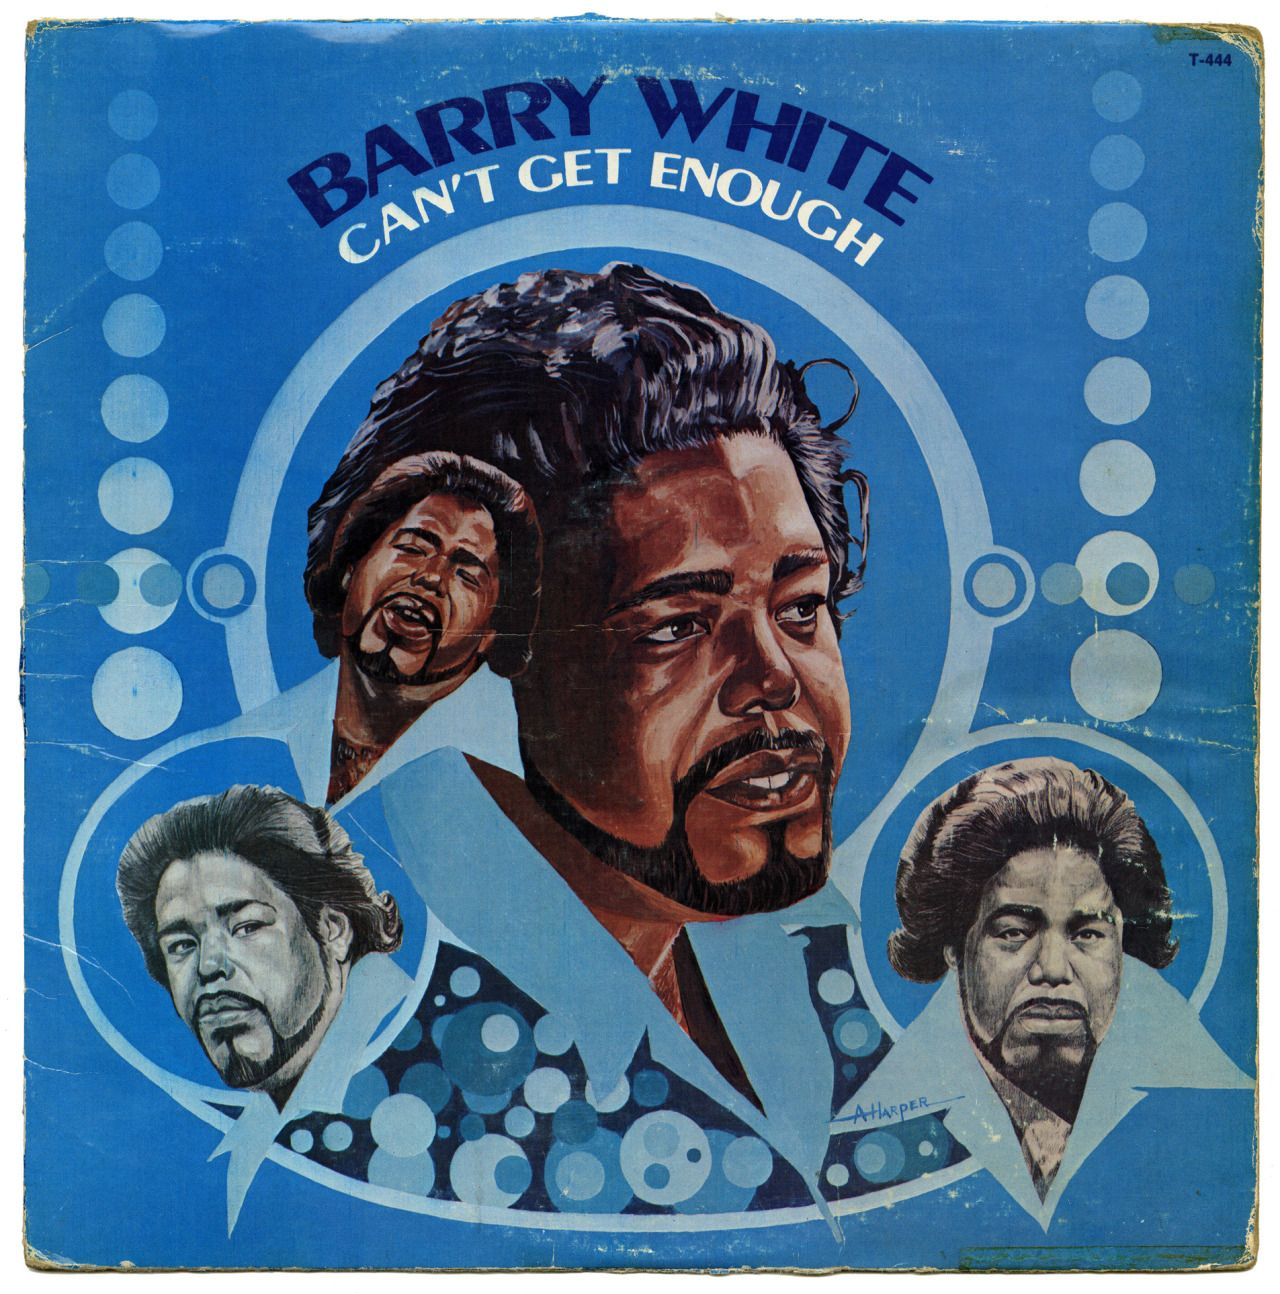 Can T Get Enoughbarry White 20th Century Records Usa 1974 With